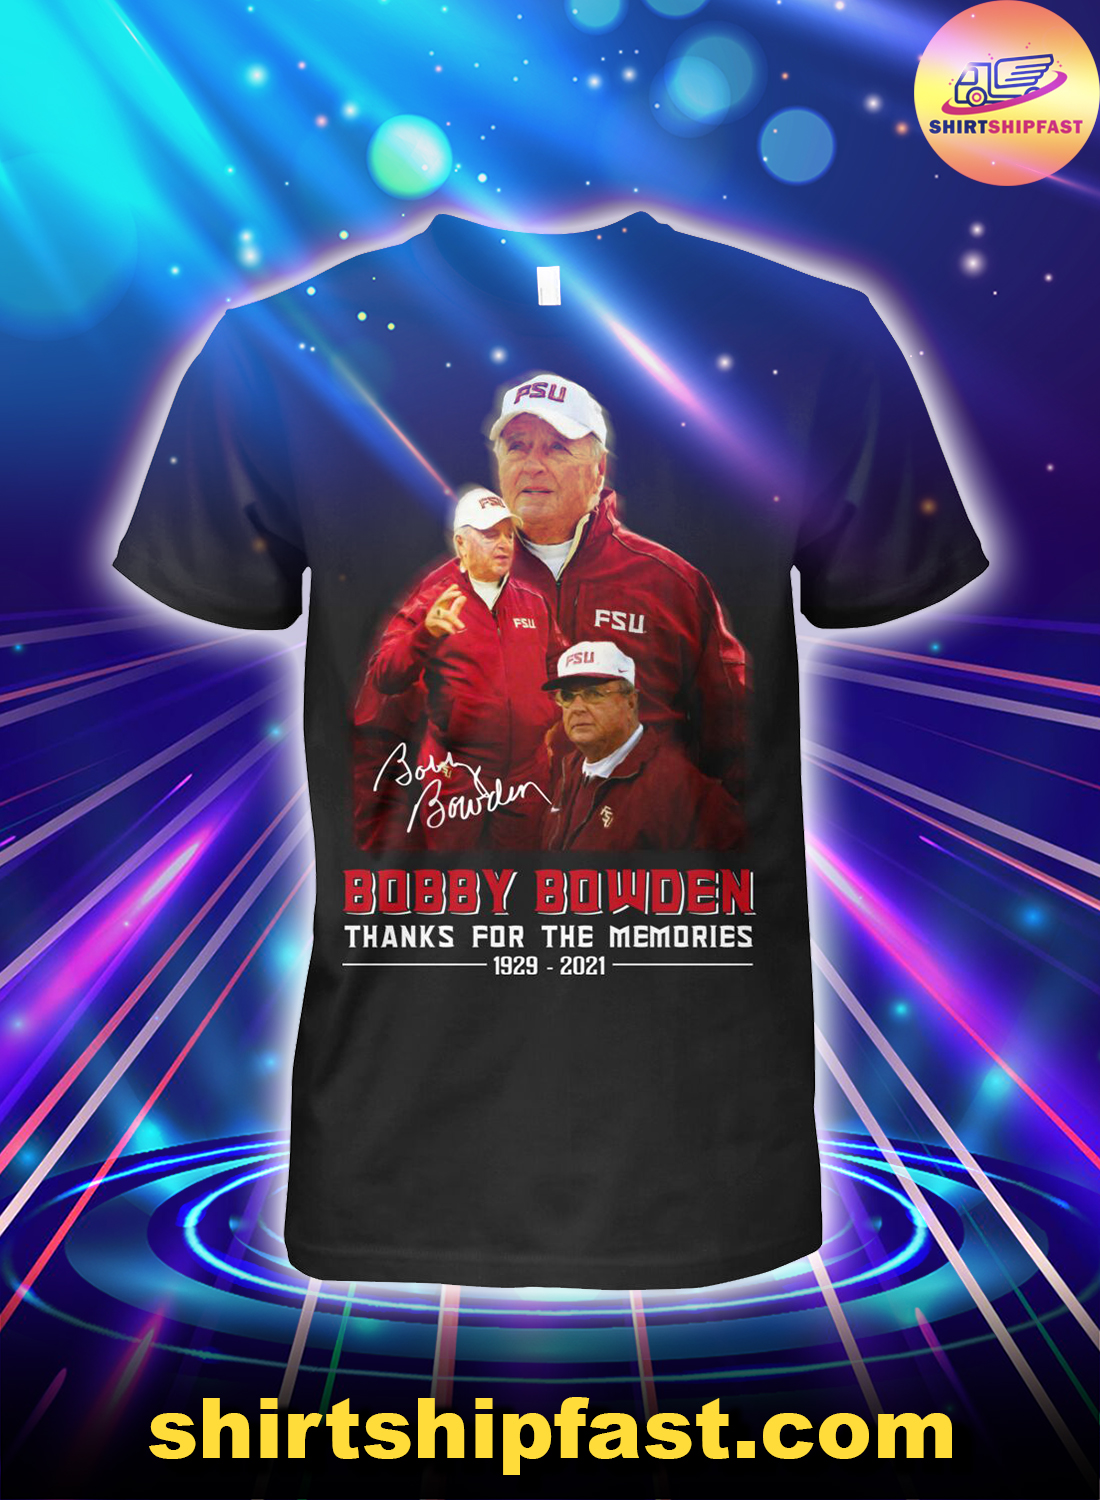 Bobby Bowden signature thanks for the memories 1929 2021 shirt